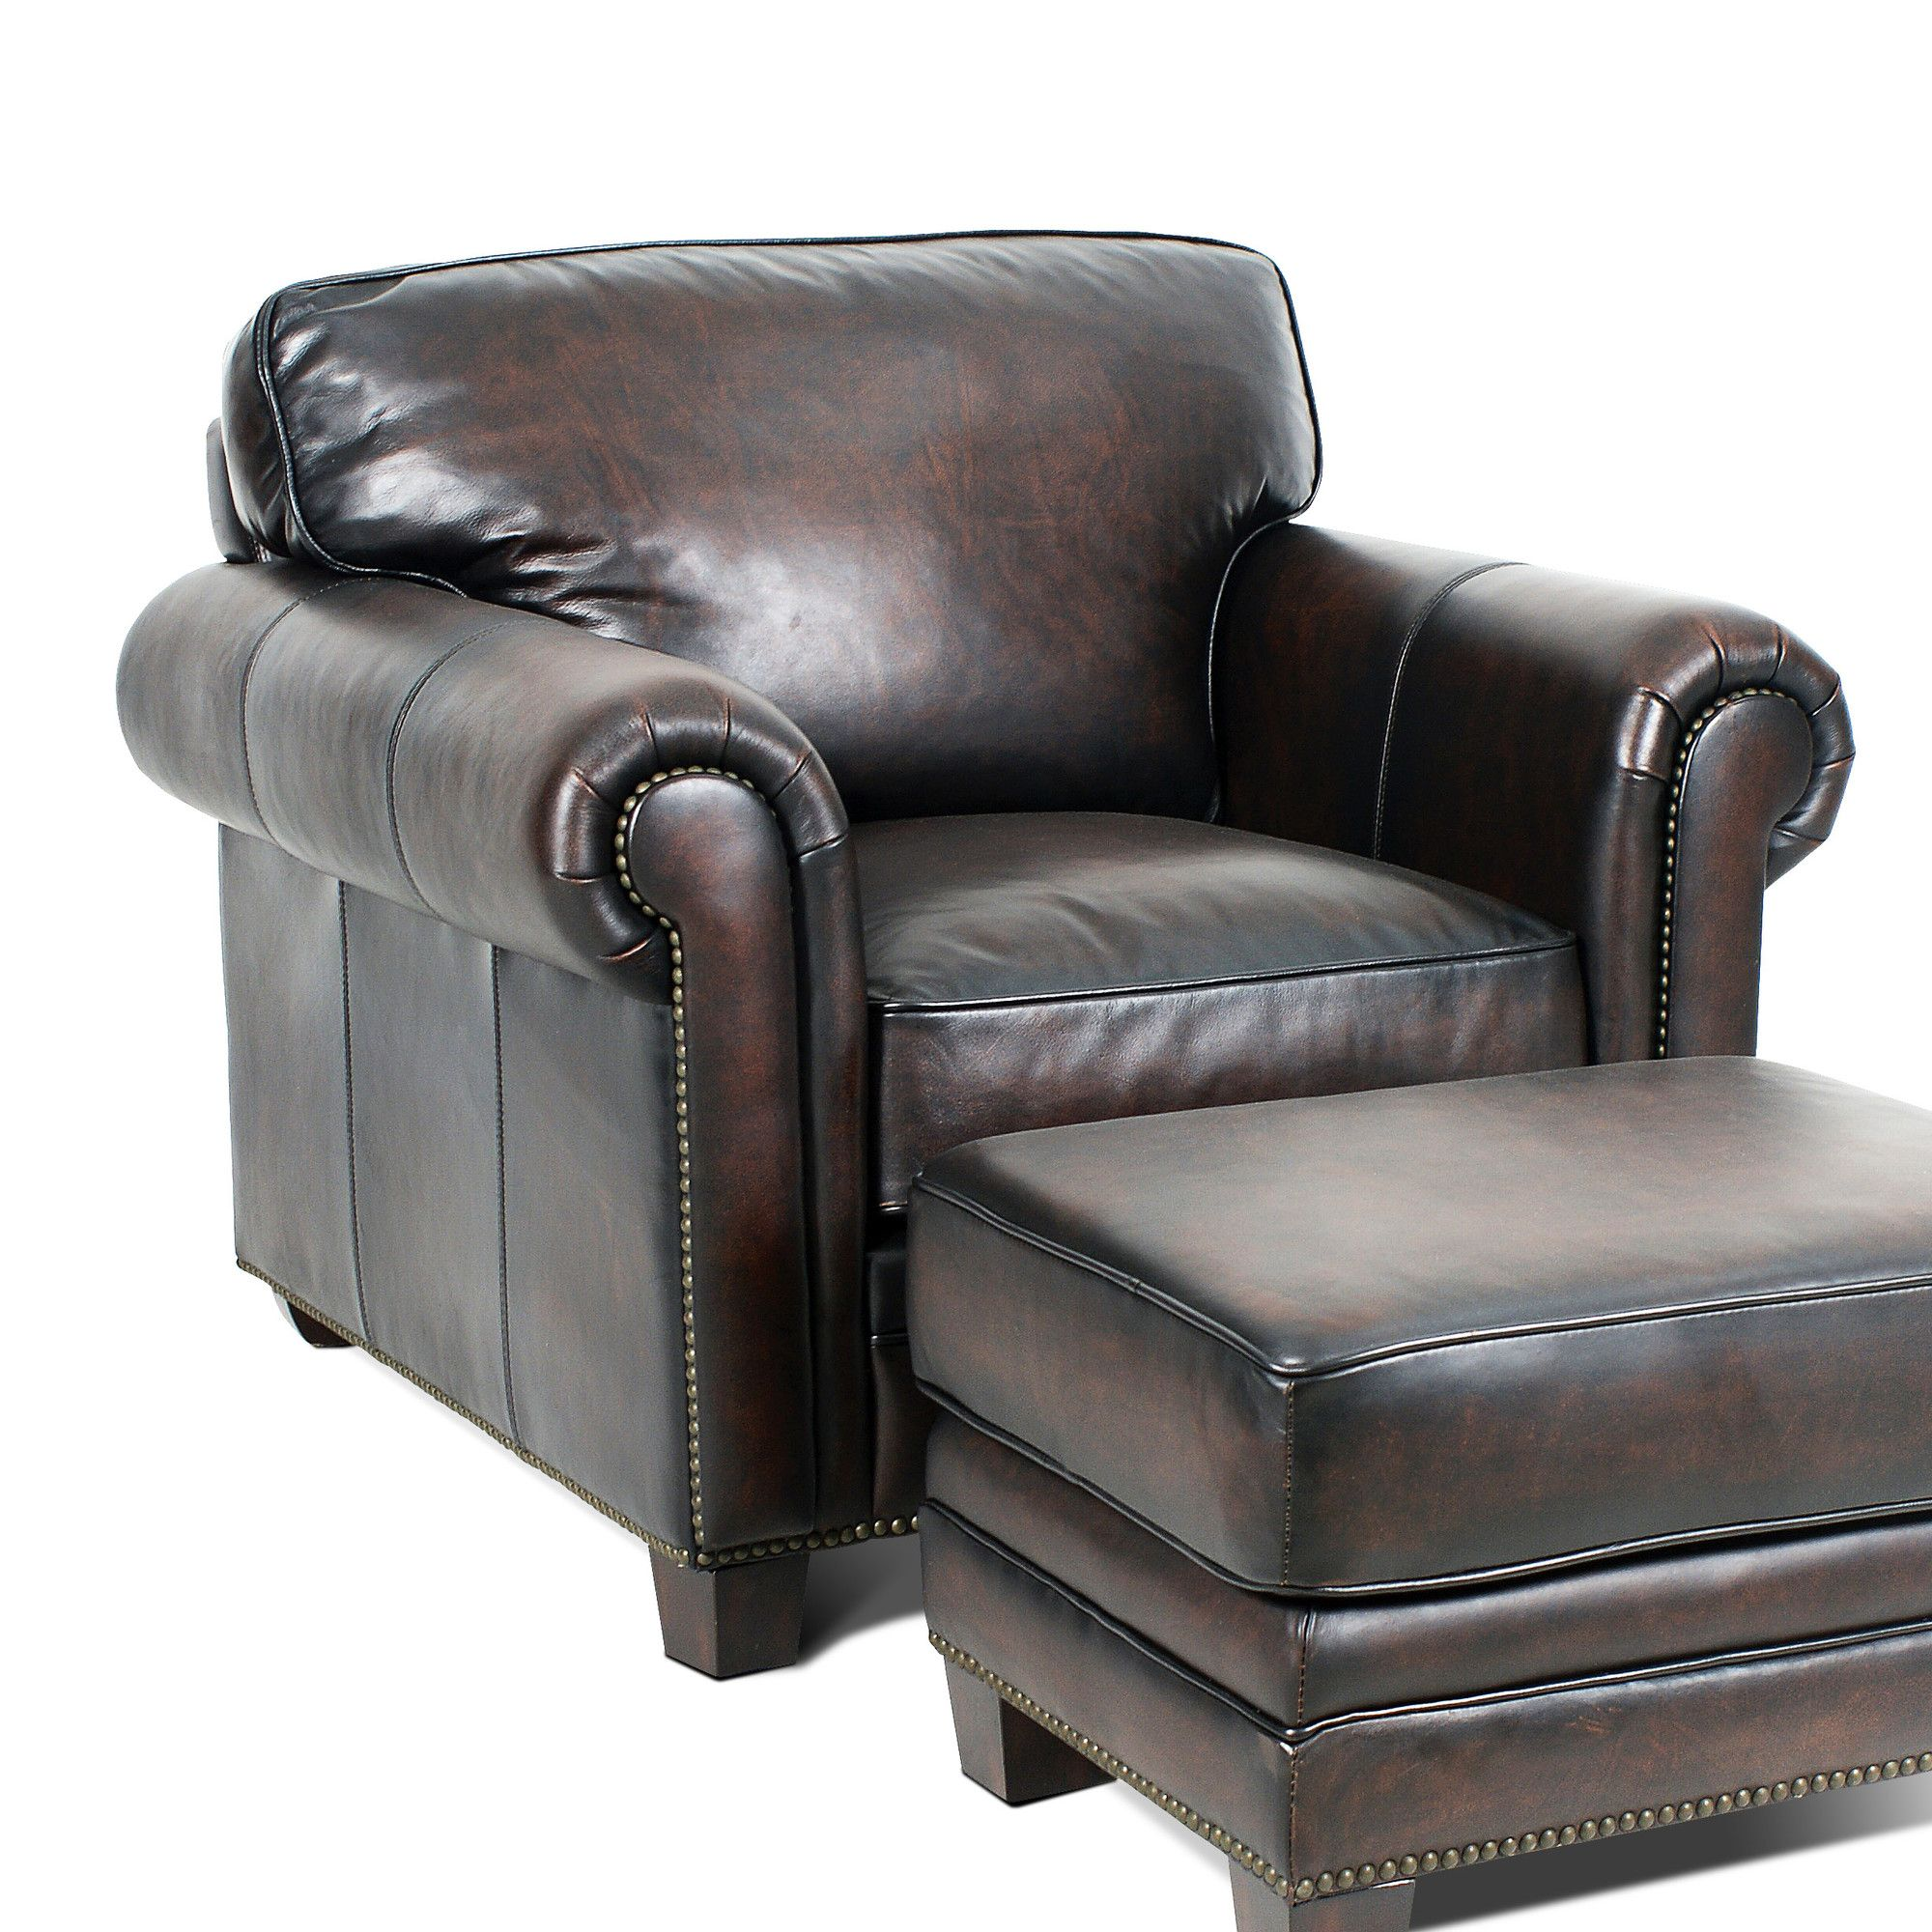 Hillsboro Club Chair Chair and ottoman, Luxury leather